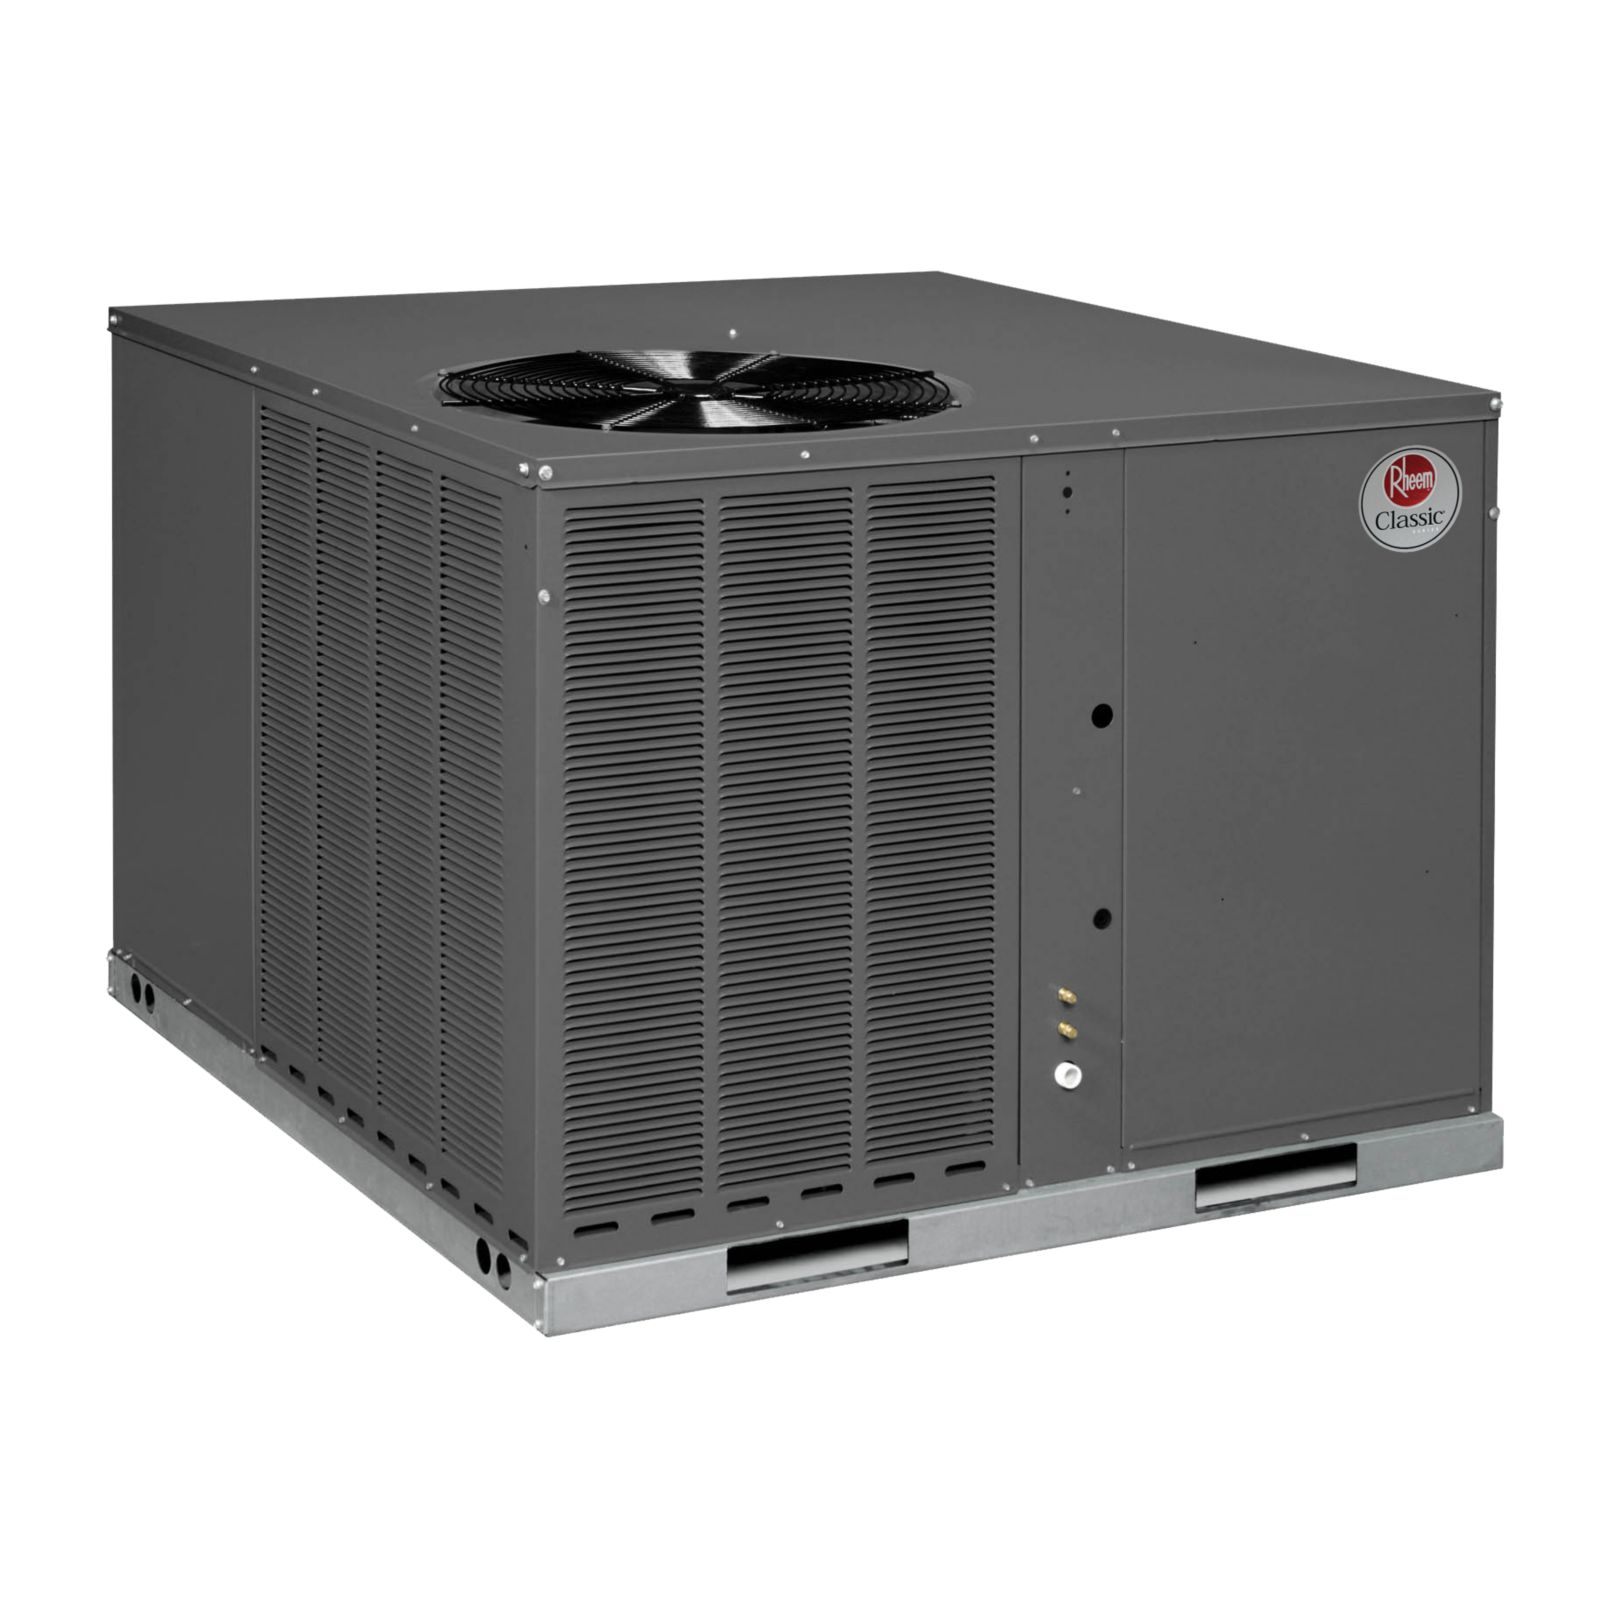 Rheem RQPL-B030JK000 - 2 1/2 Ton, 14 SEER, R410A, Packaged Heat Pump, 208-230 V, 1 Ph, 60 Hz